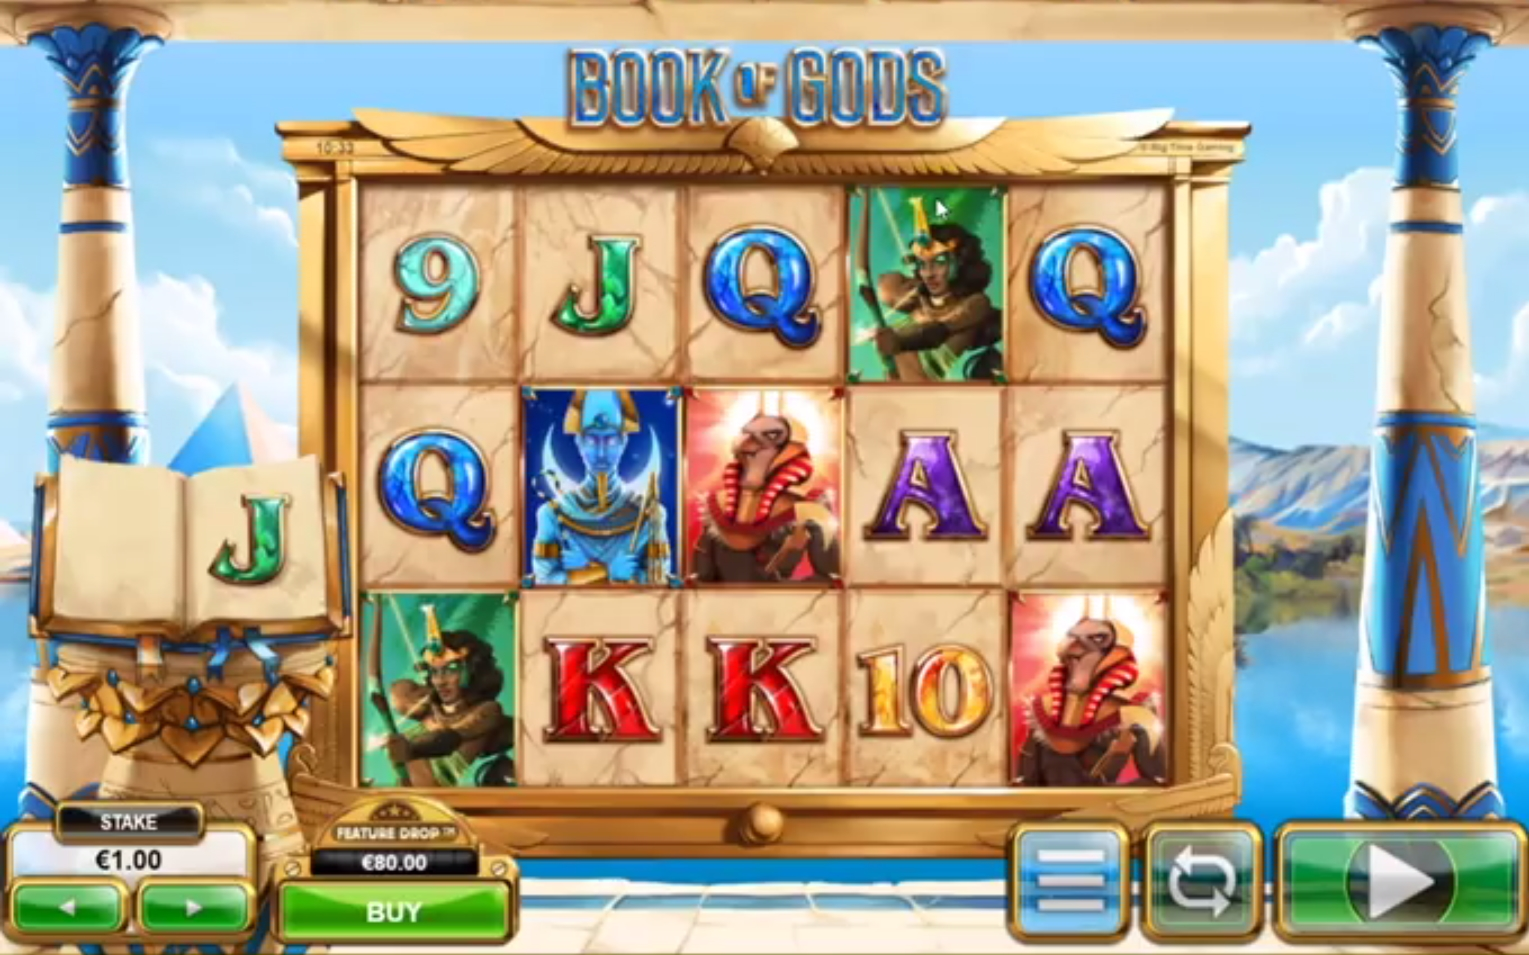 Sep 10, · Book of Gods by Big Time Gaming is a slot machine which consists of 5 reels, paylines, and 3 rows.It represents a vintage book type.The casinos online have made it available for the gamers of all levels from around the world.It mainly features drop choice and cloning symbols.It is an ancient video slot with engaging gameplay.4/10(6).